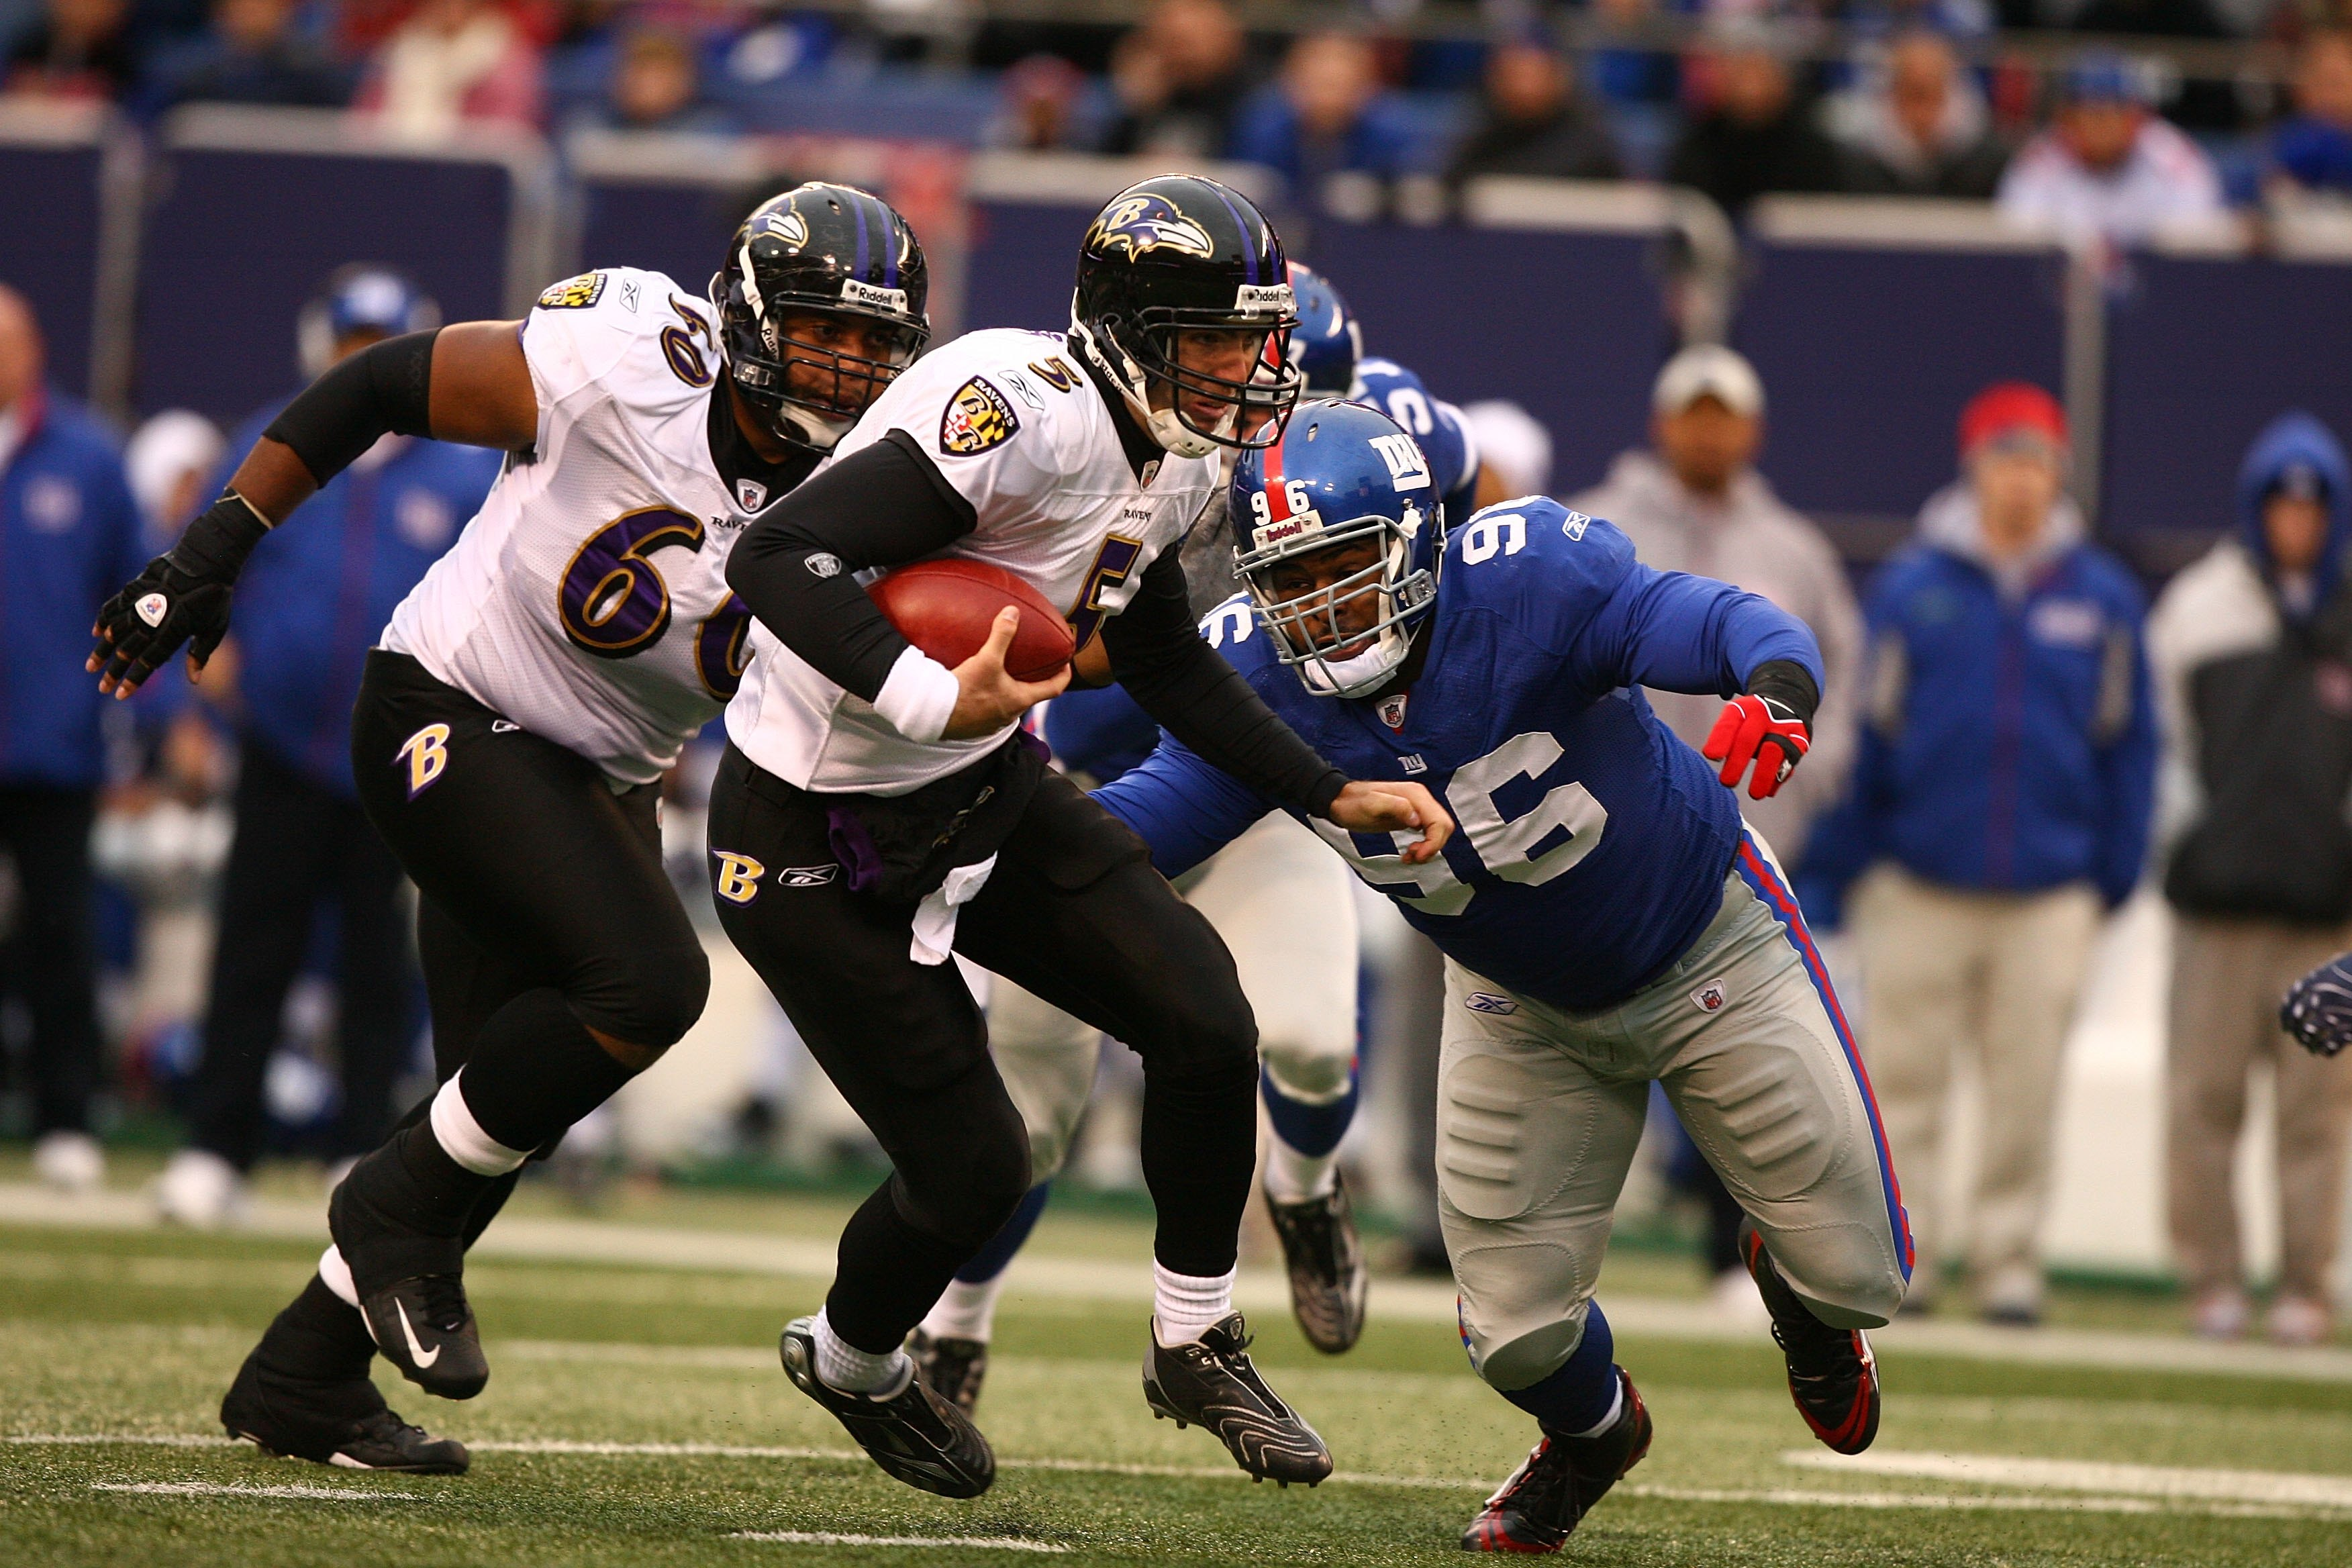 EAST RUTHERFORD, NJ - NOVEMBER 16:  Joe Flacco #5  of the Baltimore Ravens scrambles as Barry Cofield #96 of the New York Giants gives chase during their game on November 16, 2008 at Giants Stadium in East Rutherford, New Jersey.  (Photo by Al Bello/Getty